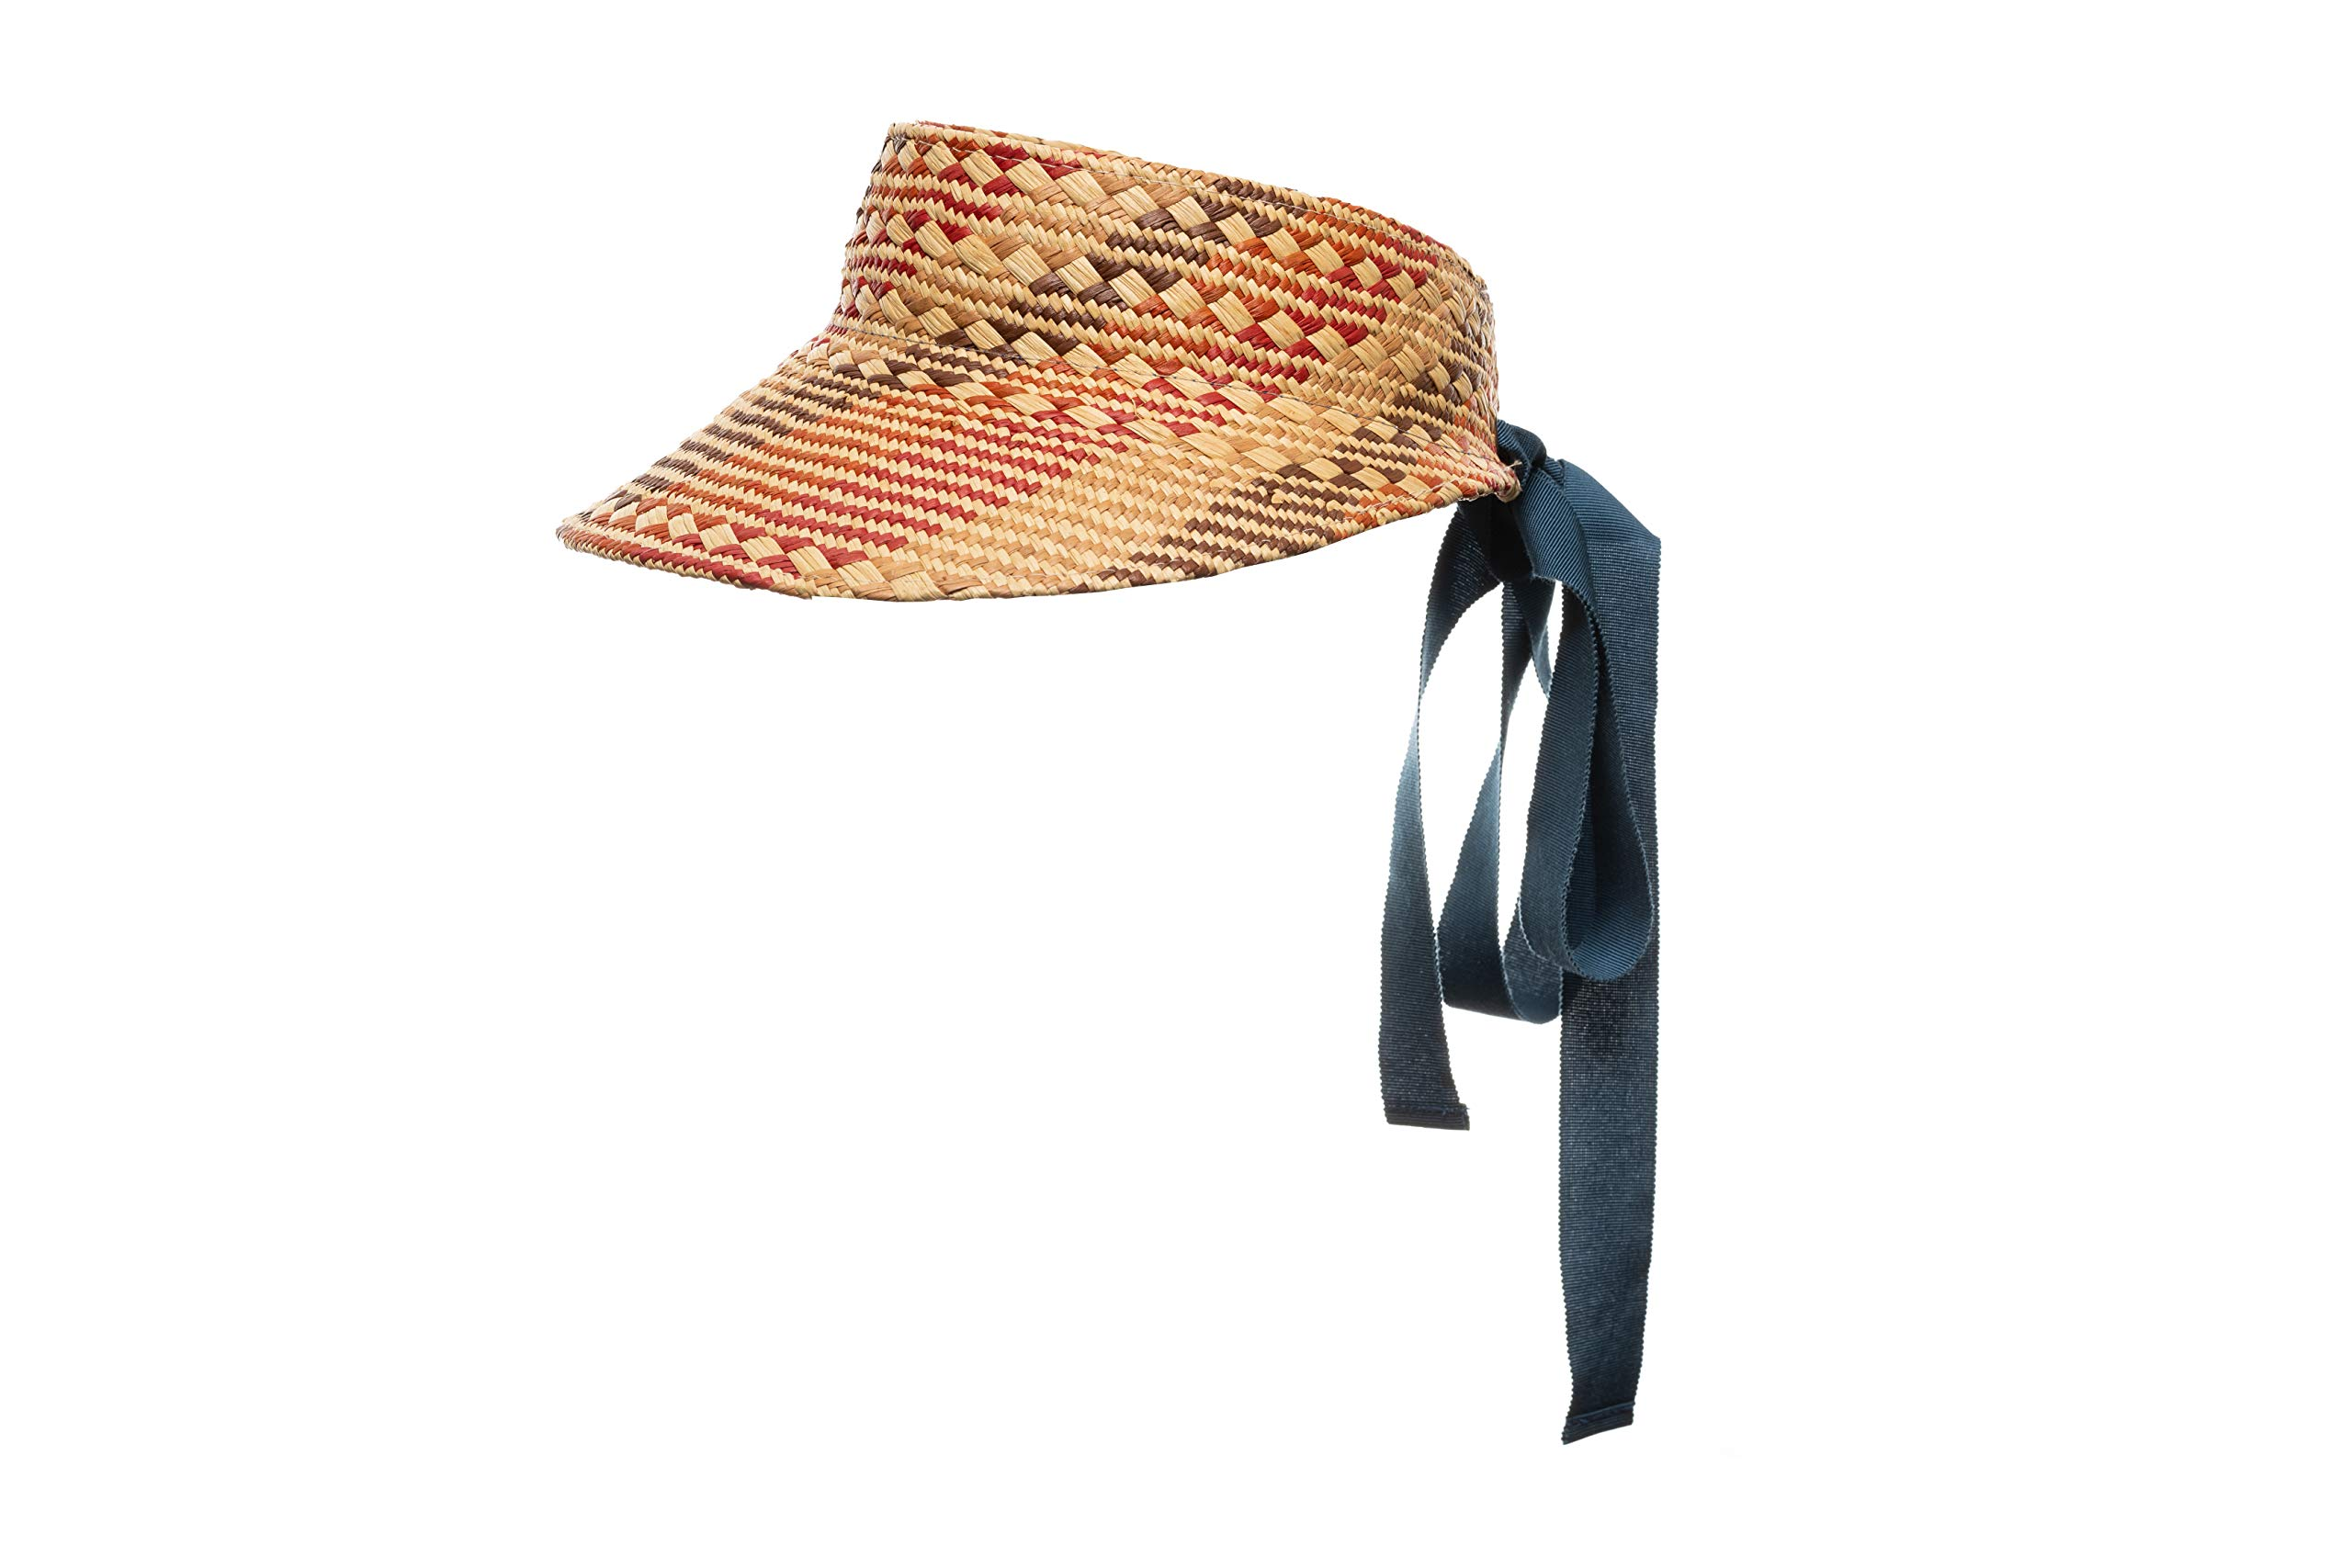 The Clementine Straw Visor with Ribbon Tie Closure (Red)